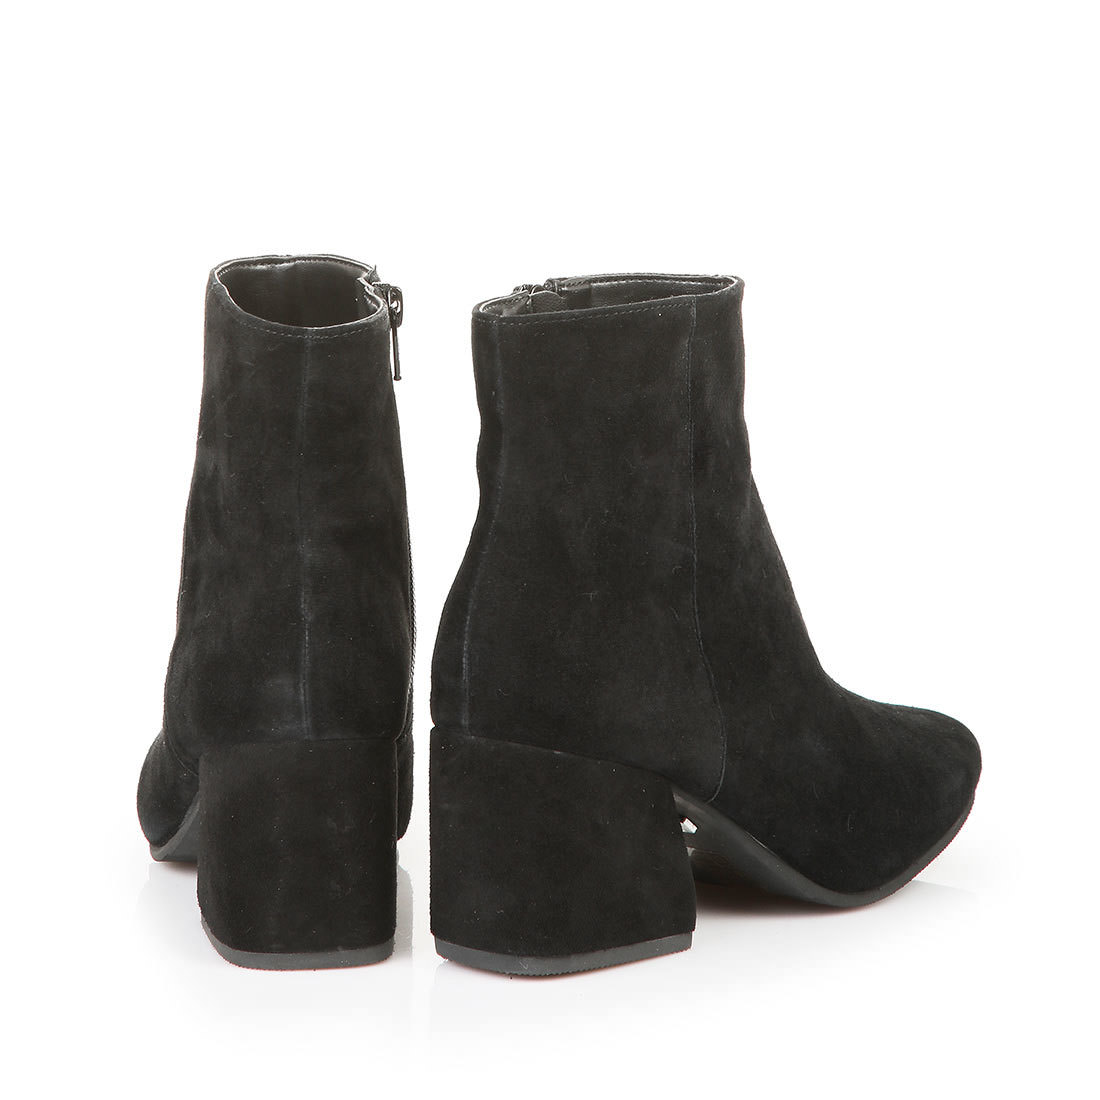 BUFFALO Ankle boots shop for 85Pac1